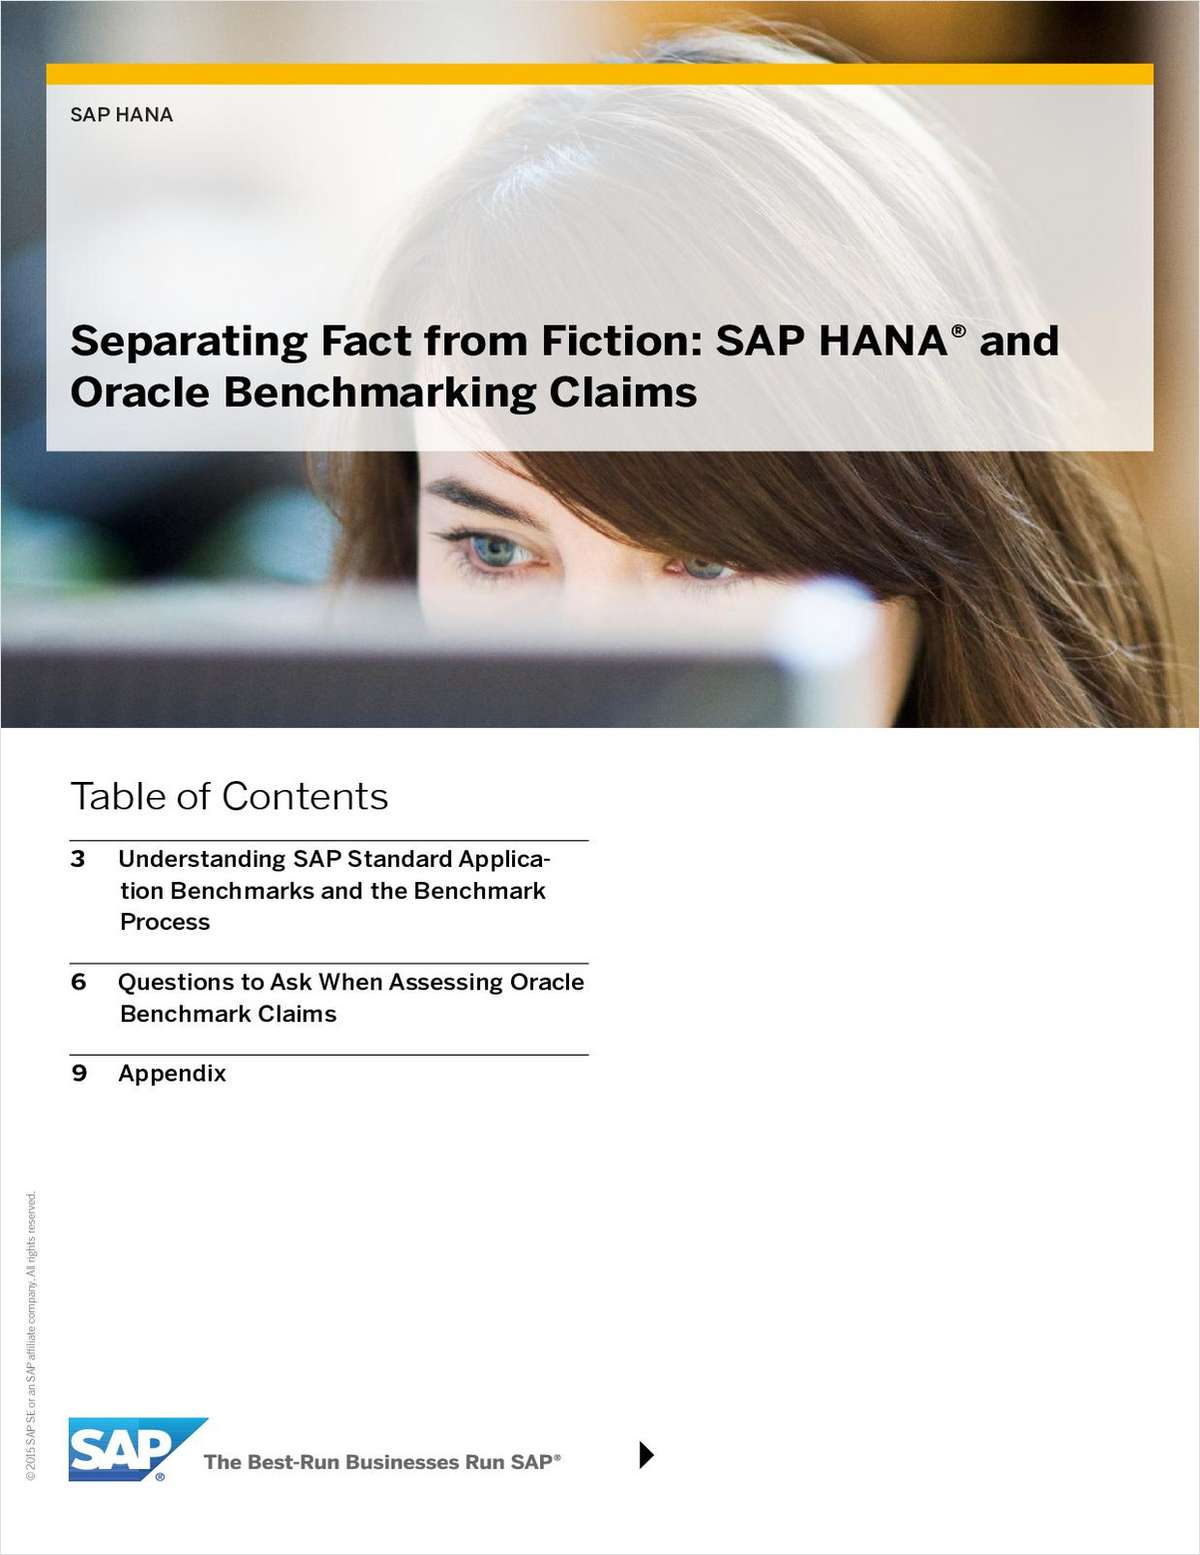 Separating Fact from Fiction: SAP HANA® and Oracle Benchmarking Claims